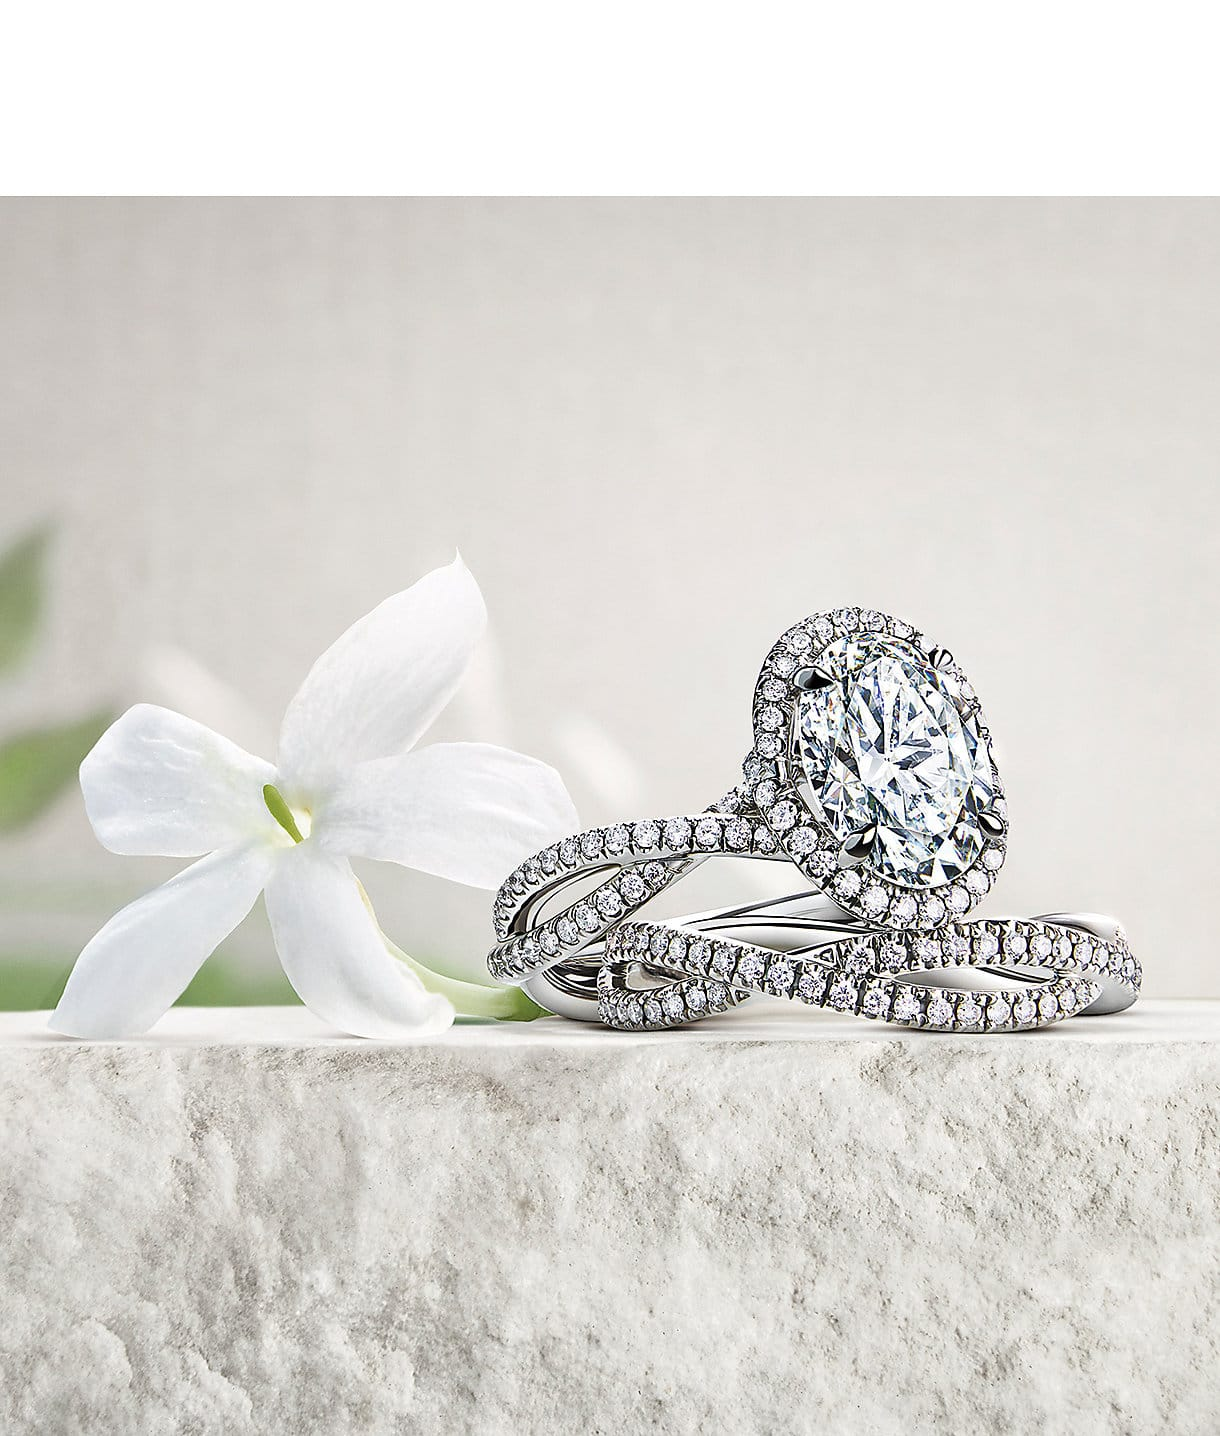 DY Lanai engagement ring and band in platinum with diamonds on a stone with a jasmine flower.